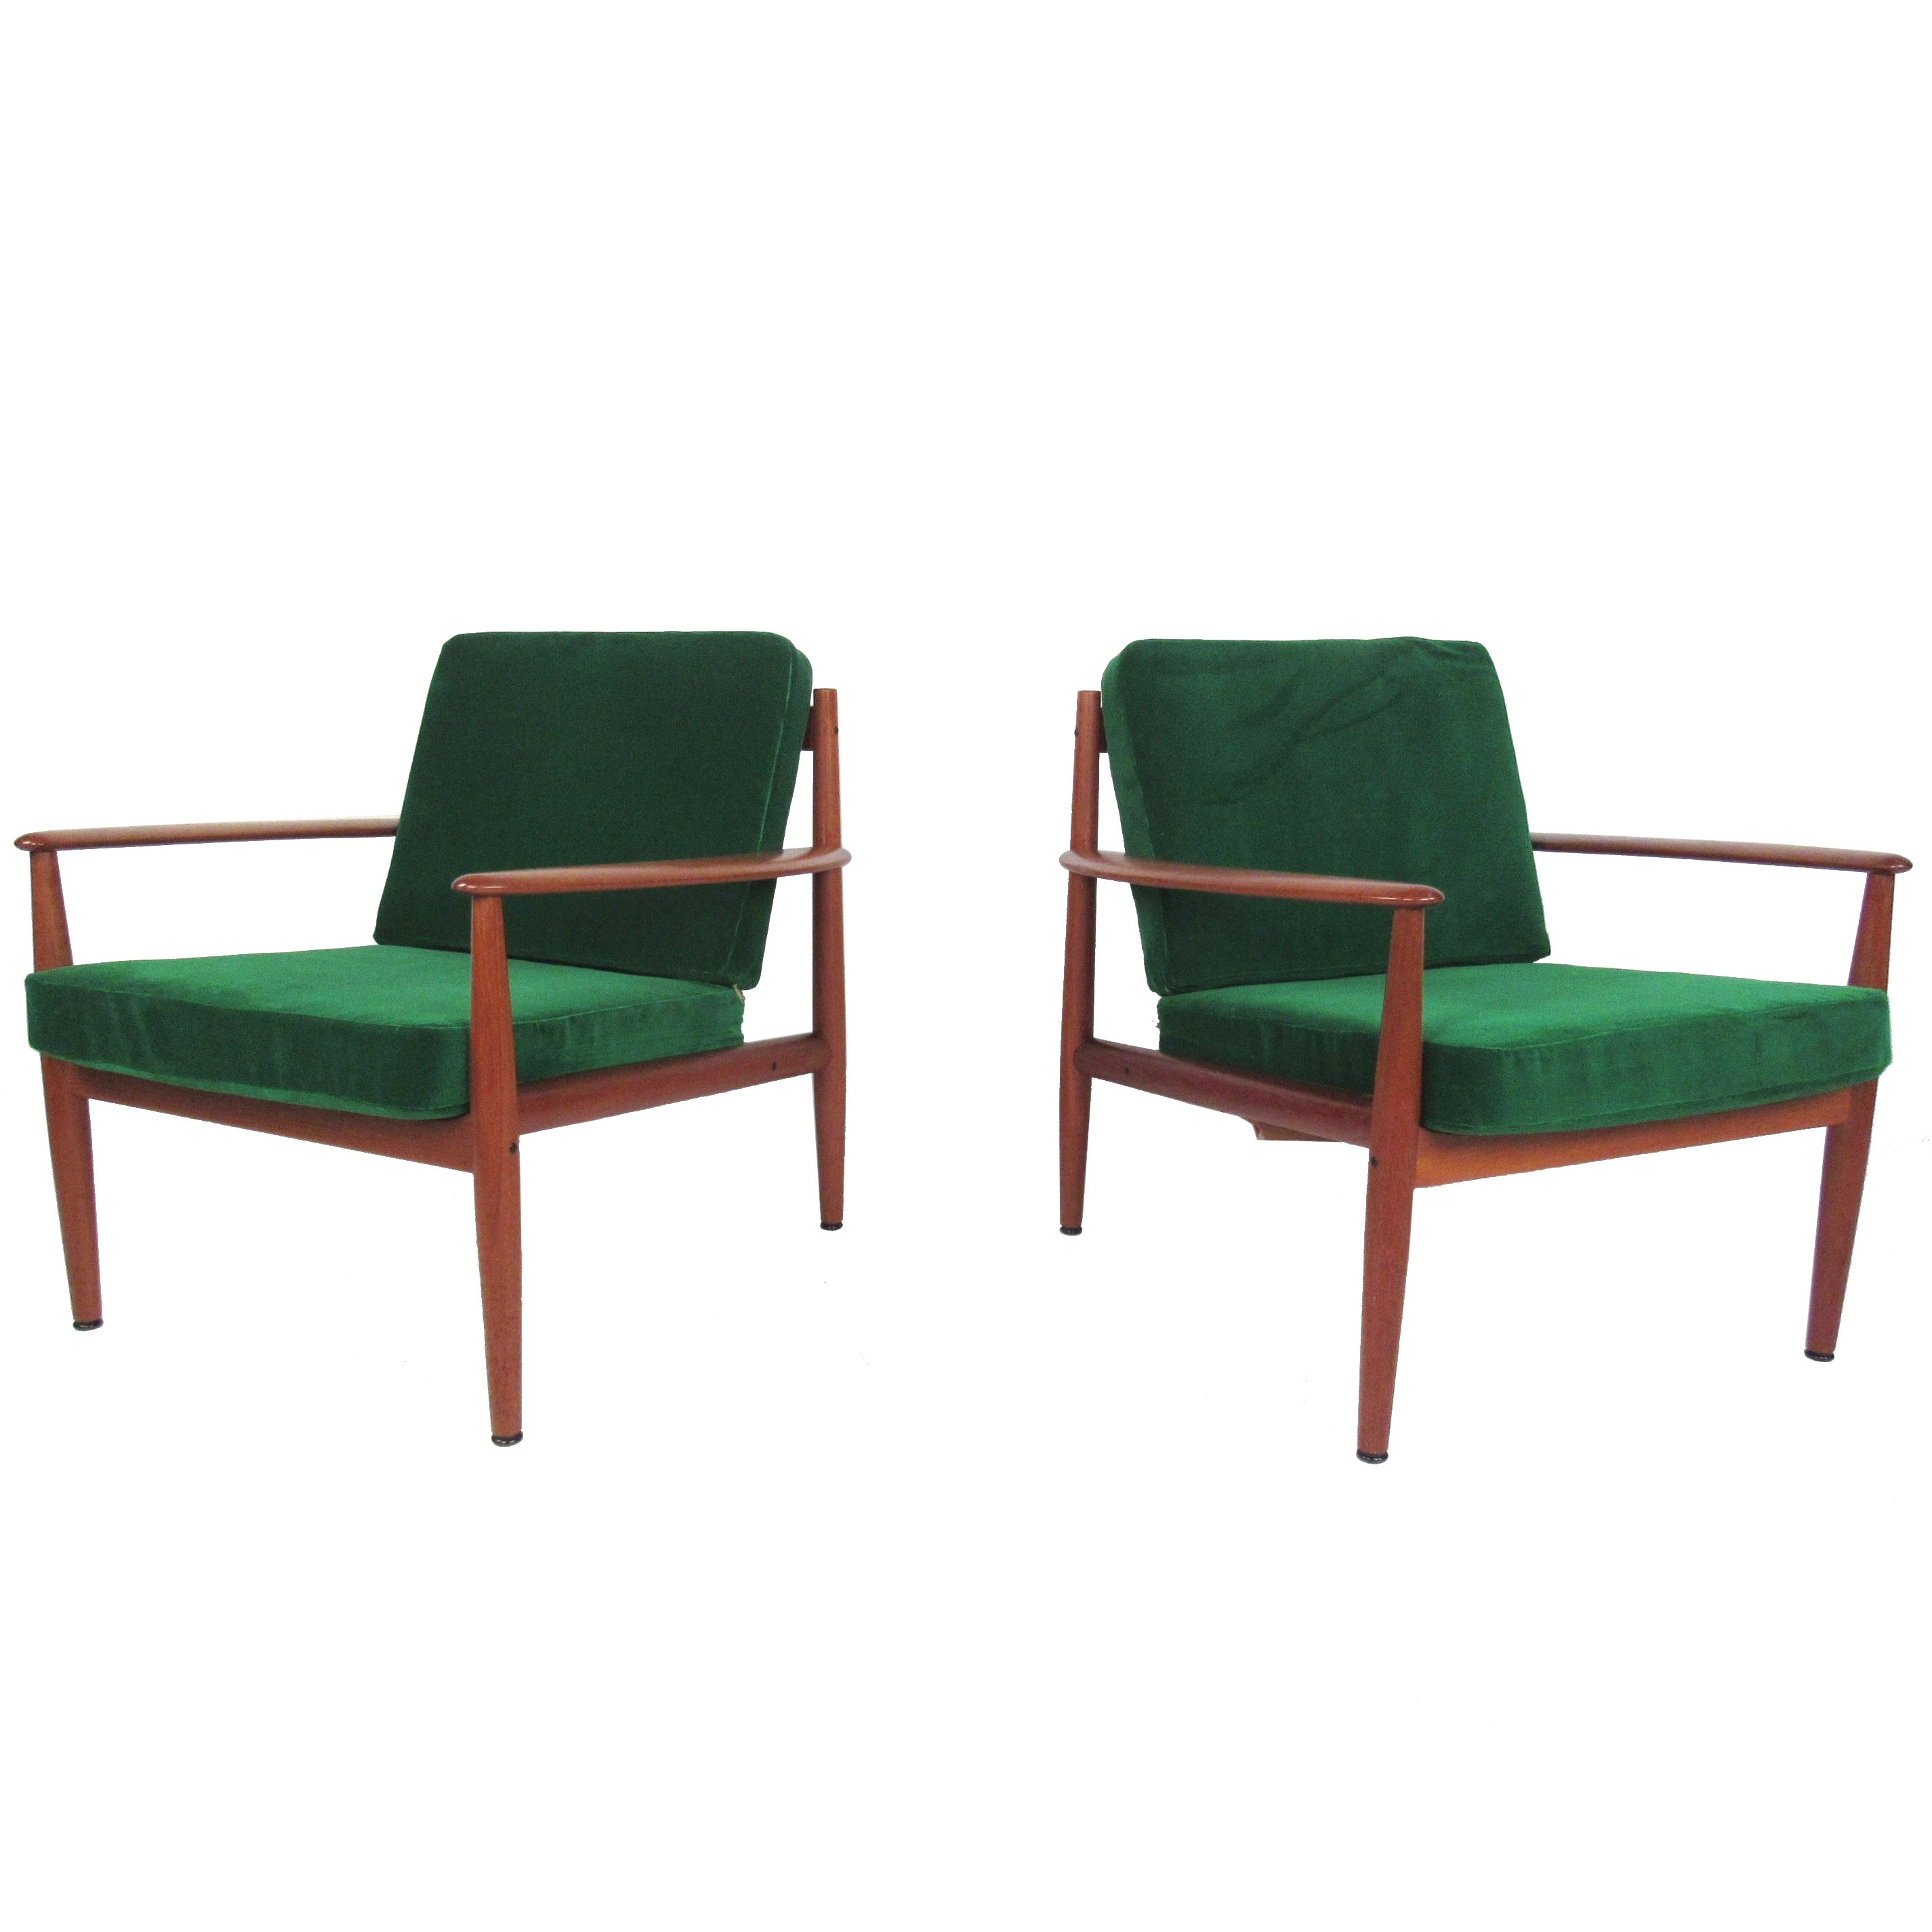 Pair Scandinavian Modern Teak Armchairs by Grete Jalk for France and Son